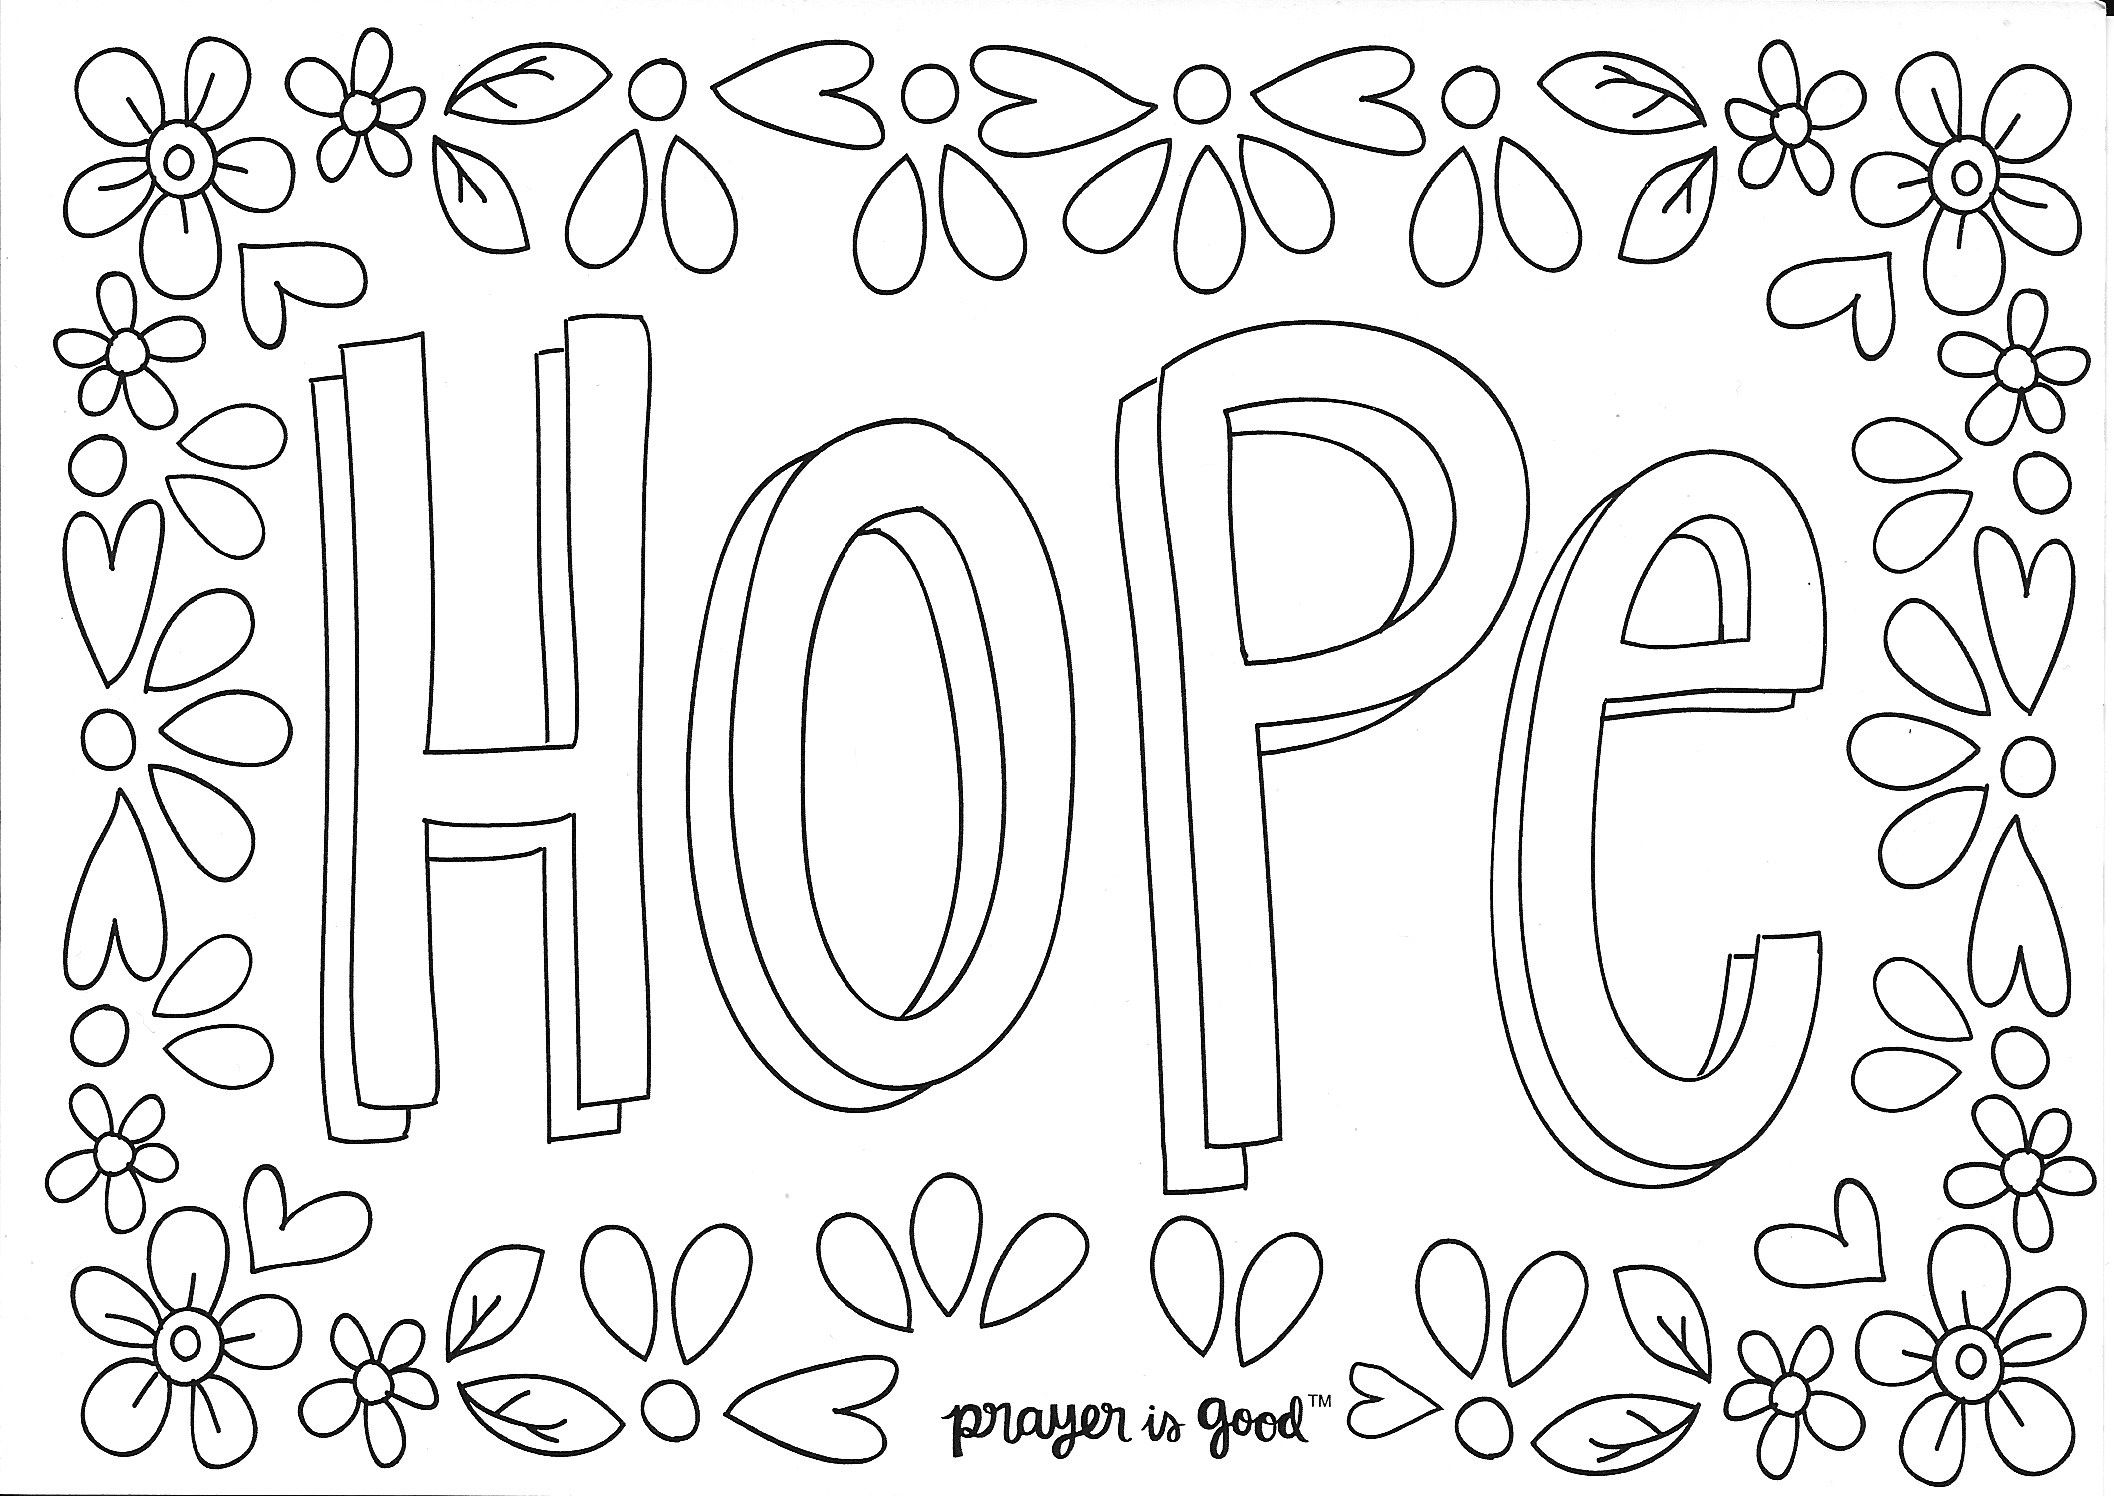 A Hopeful And Blank Canvas Color Our Hope Postcard And